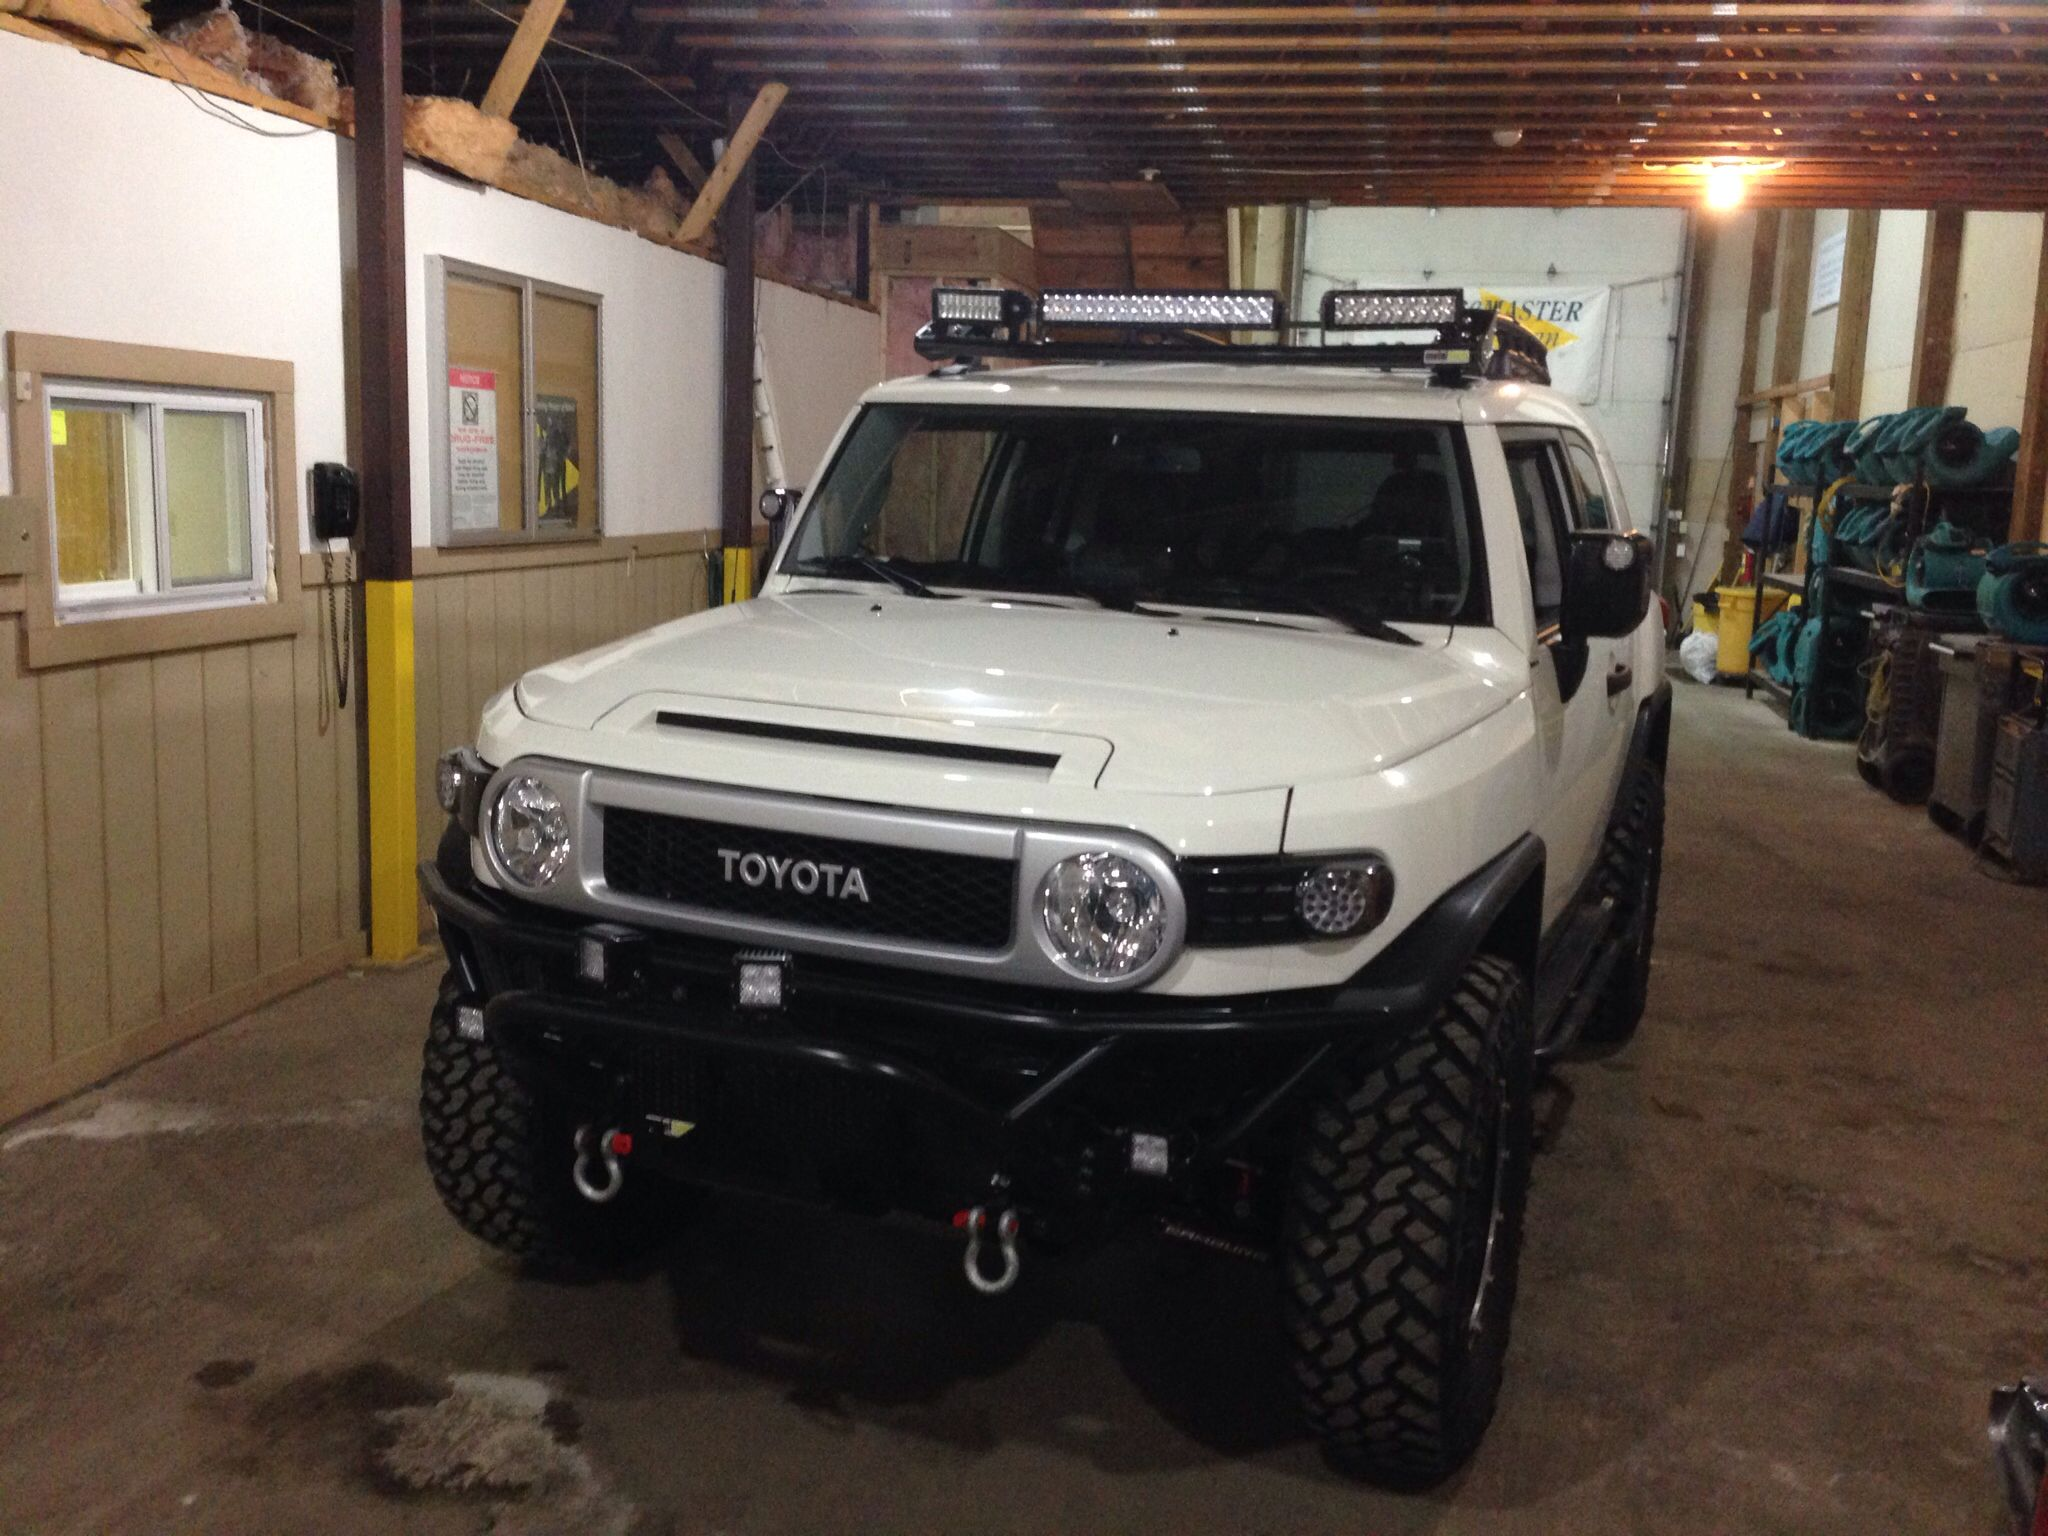 Fj cruiser with metal tech bumper and light bar vehicles pinterest fj cruiser with metal tech bumper and light bar mozeypictures Choice Image